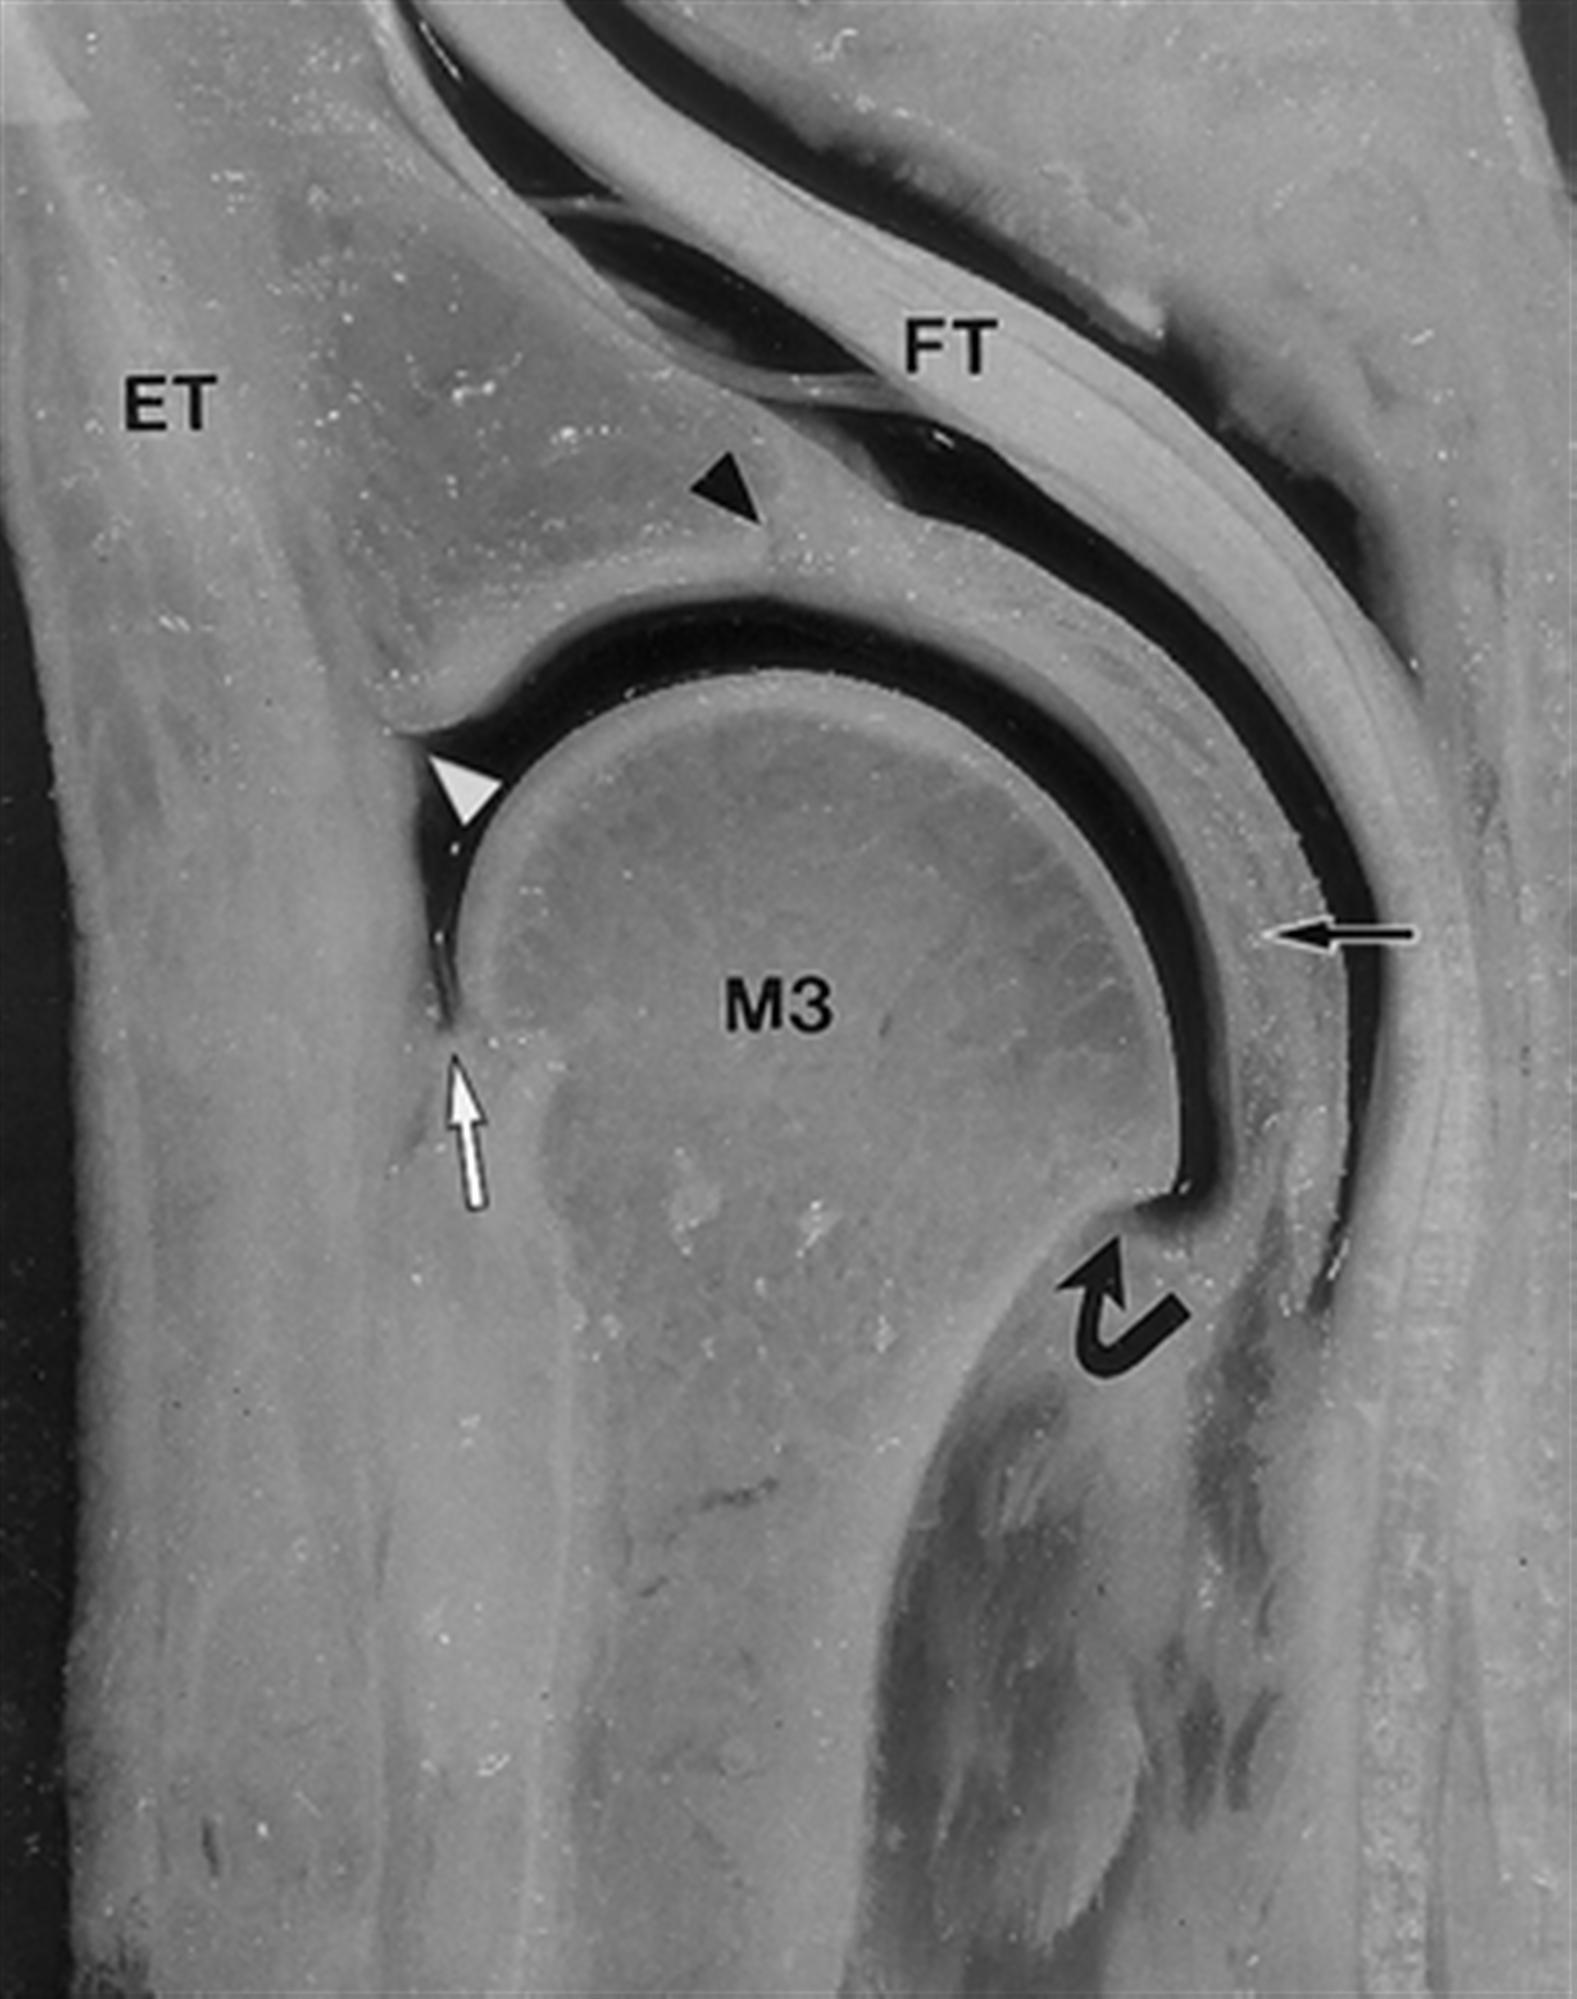 http://upload.orthobullets.com/topic/7053/images/plantar plate.jpg